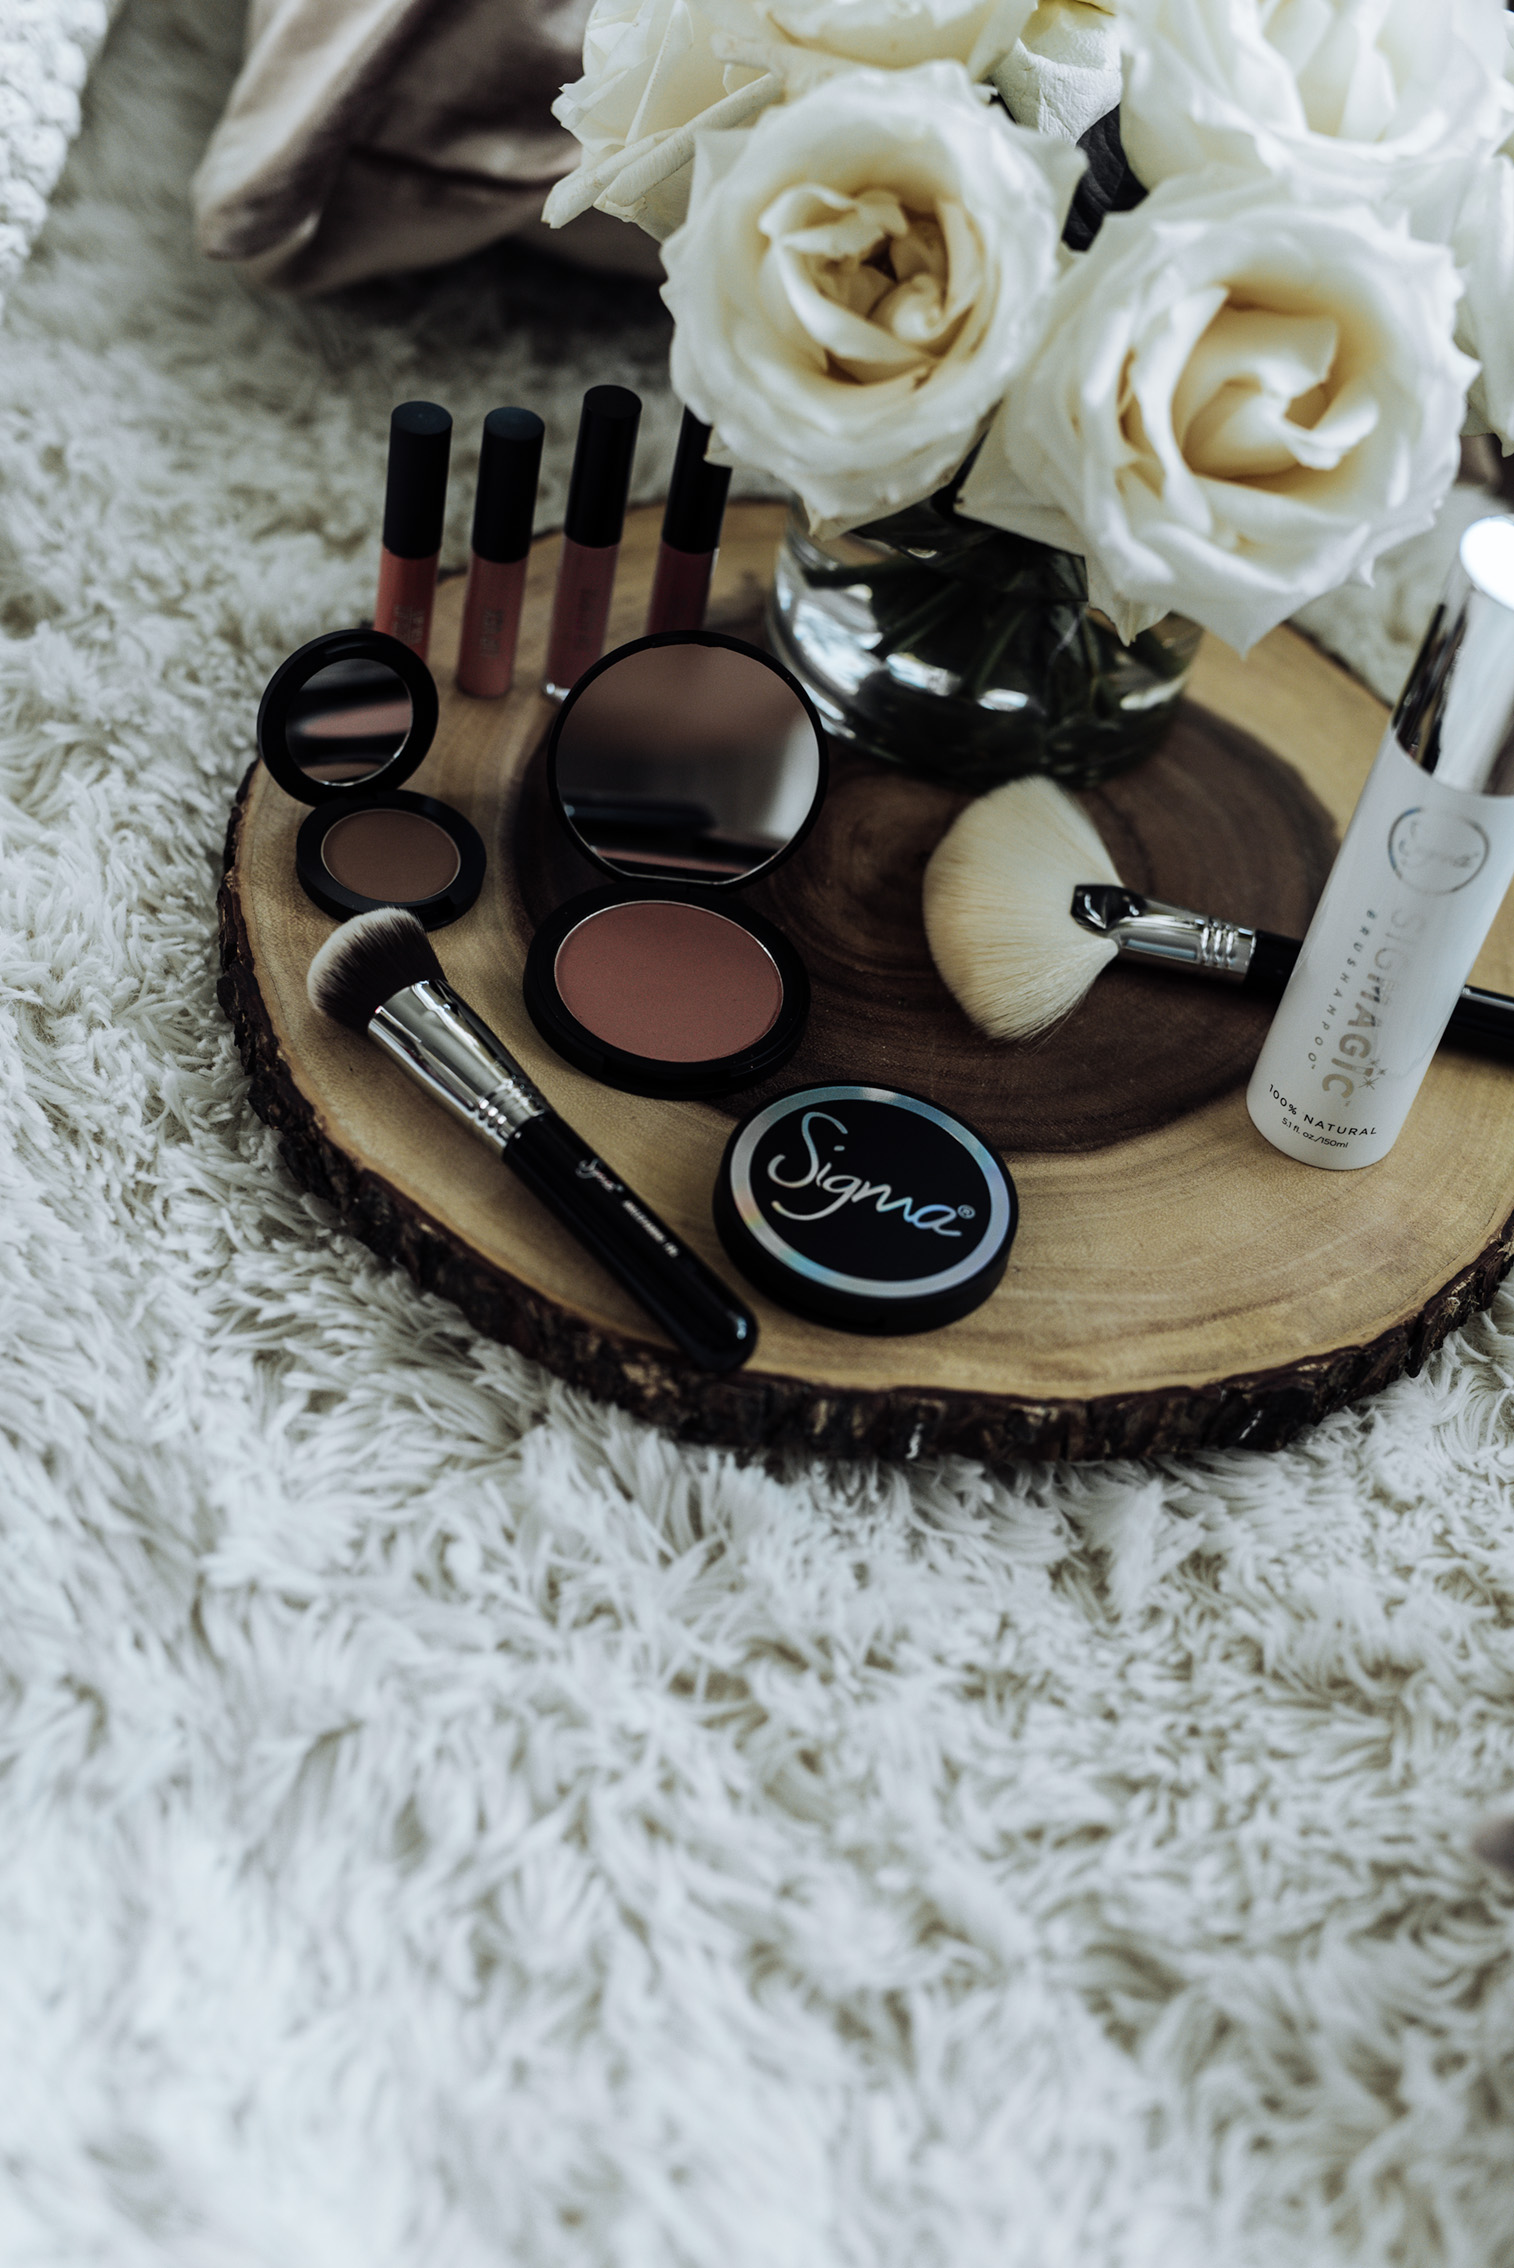 Tiffany Jais fashion and lifestyle blogger of Flaunt and Center | Beauty blogger | Sigma Beauty Poweder bronzer-LIMELIGHT | Aura Powder blush in Cor-De-Rosa | Fan Brush | Brow expert kit | Sigma Spa brush cleaning glove | SIGMAJIC Brush shampoo | Lip Eclipse set in Neutral